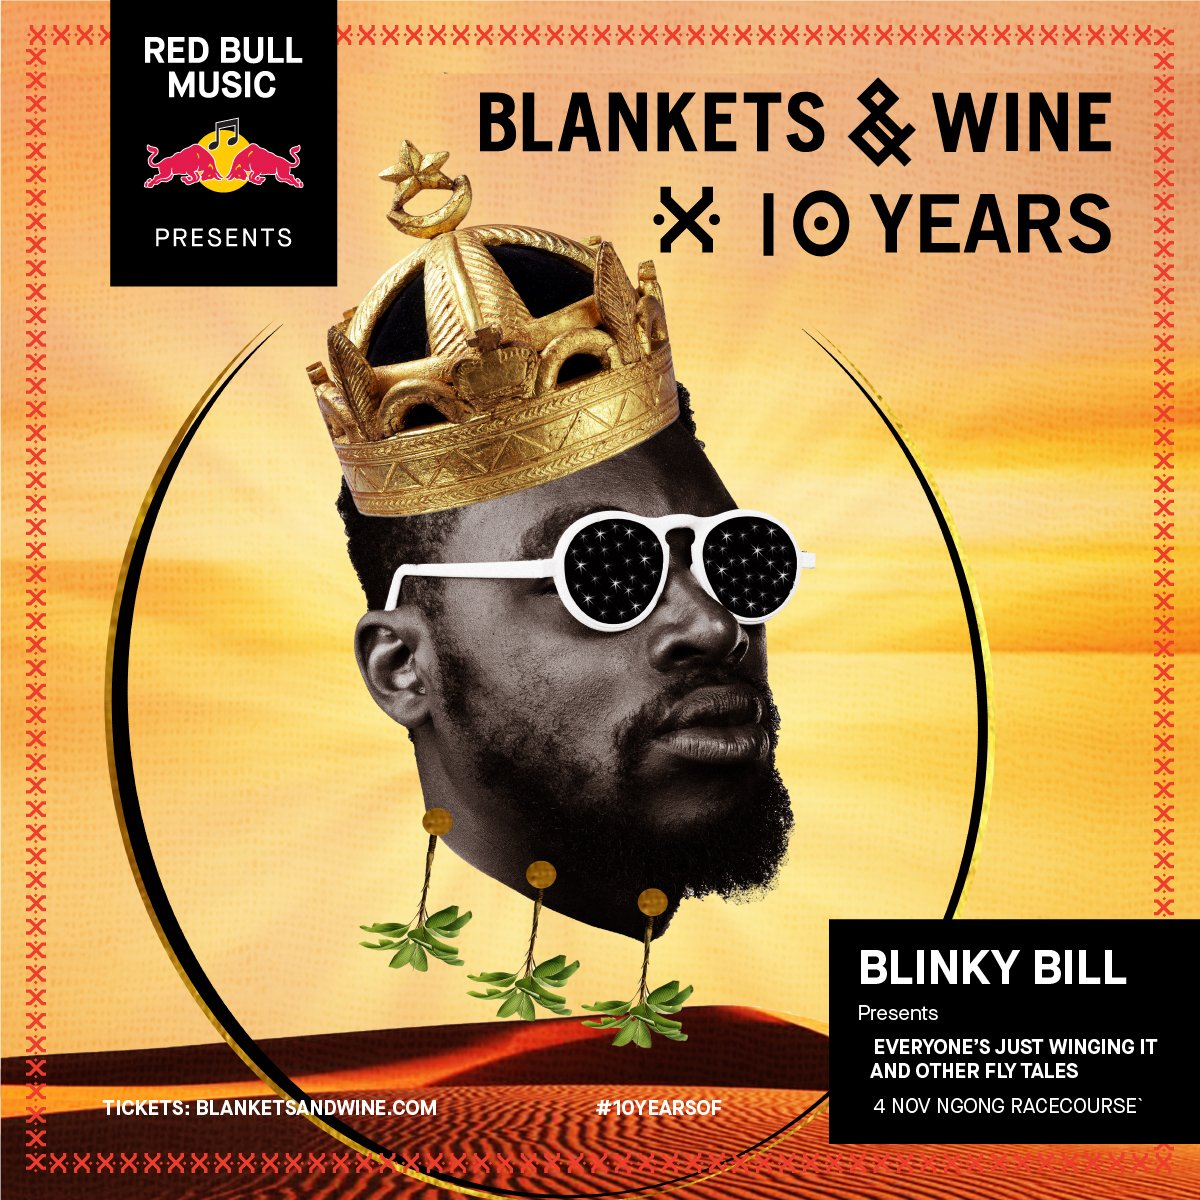 RedBull Music Presents: Blankets & Wine x 10 Years